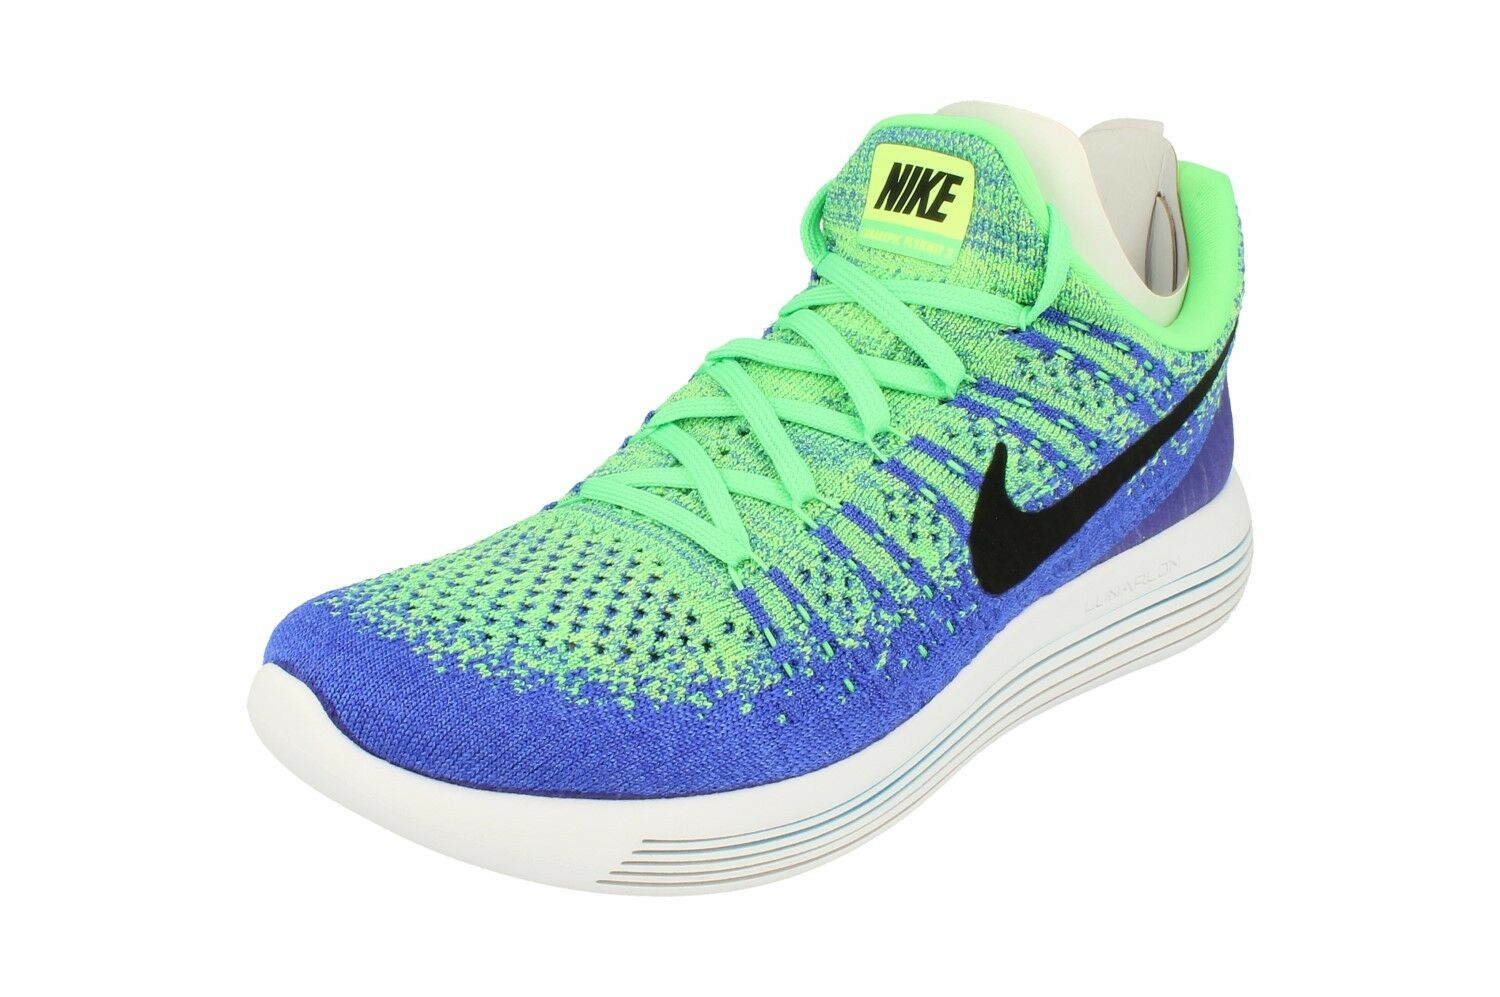 Nike Mens Lunarepic Low Flyknit 2 Mens Nike Running Trainers 863779 Sneakers Shoes 301 5a20d6